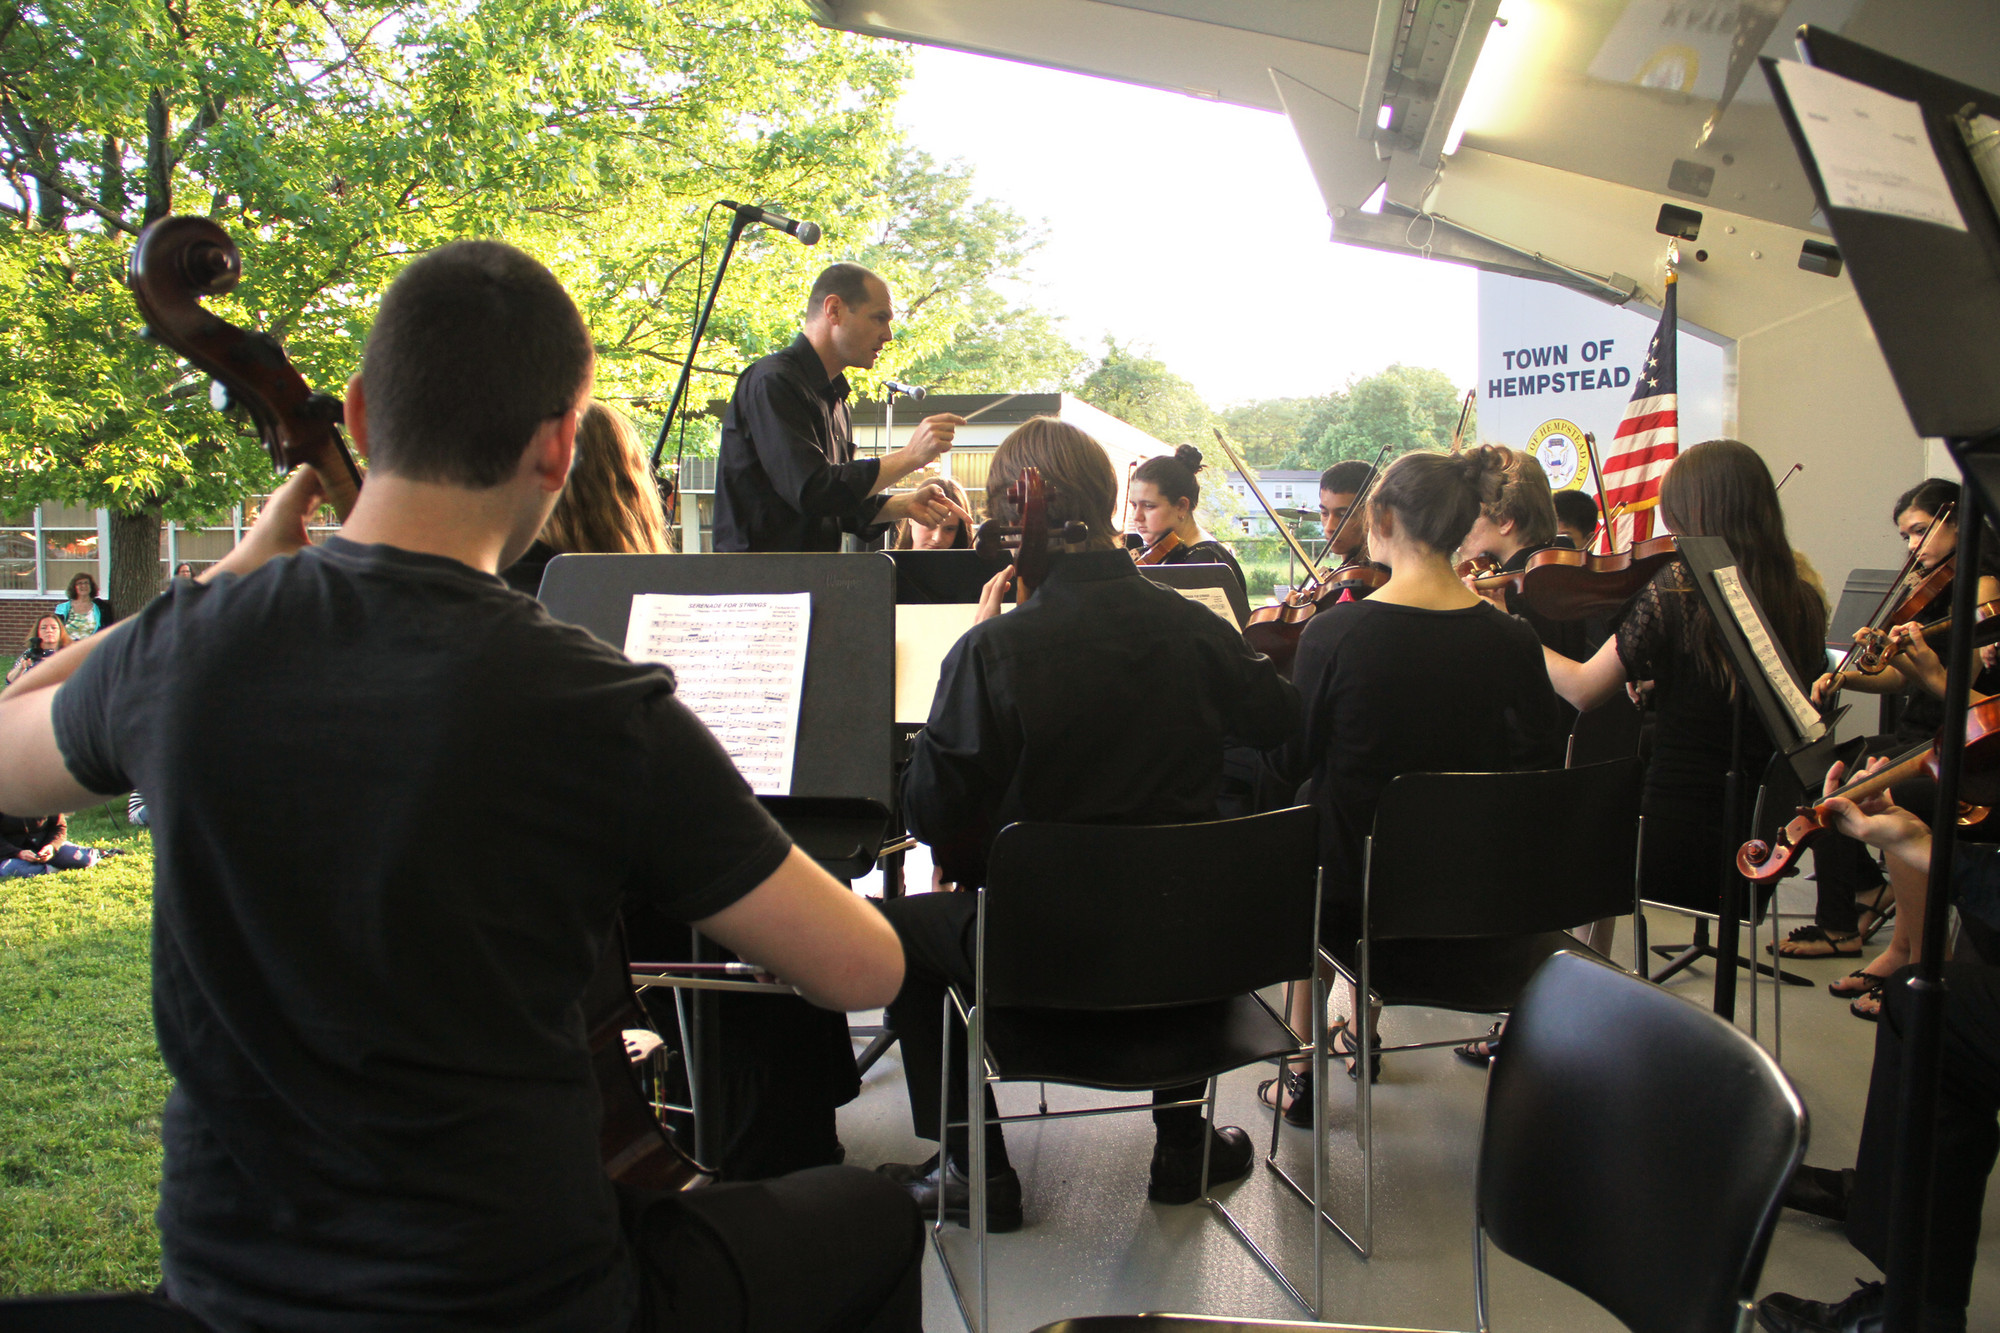 The Calhoun-Mepham Chamber Orchestra, with Christopher Sutherland conducting, performed at the concert.